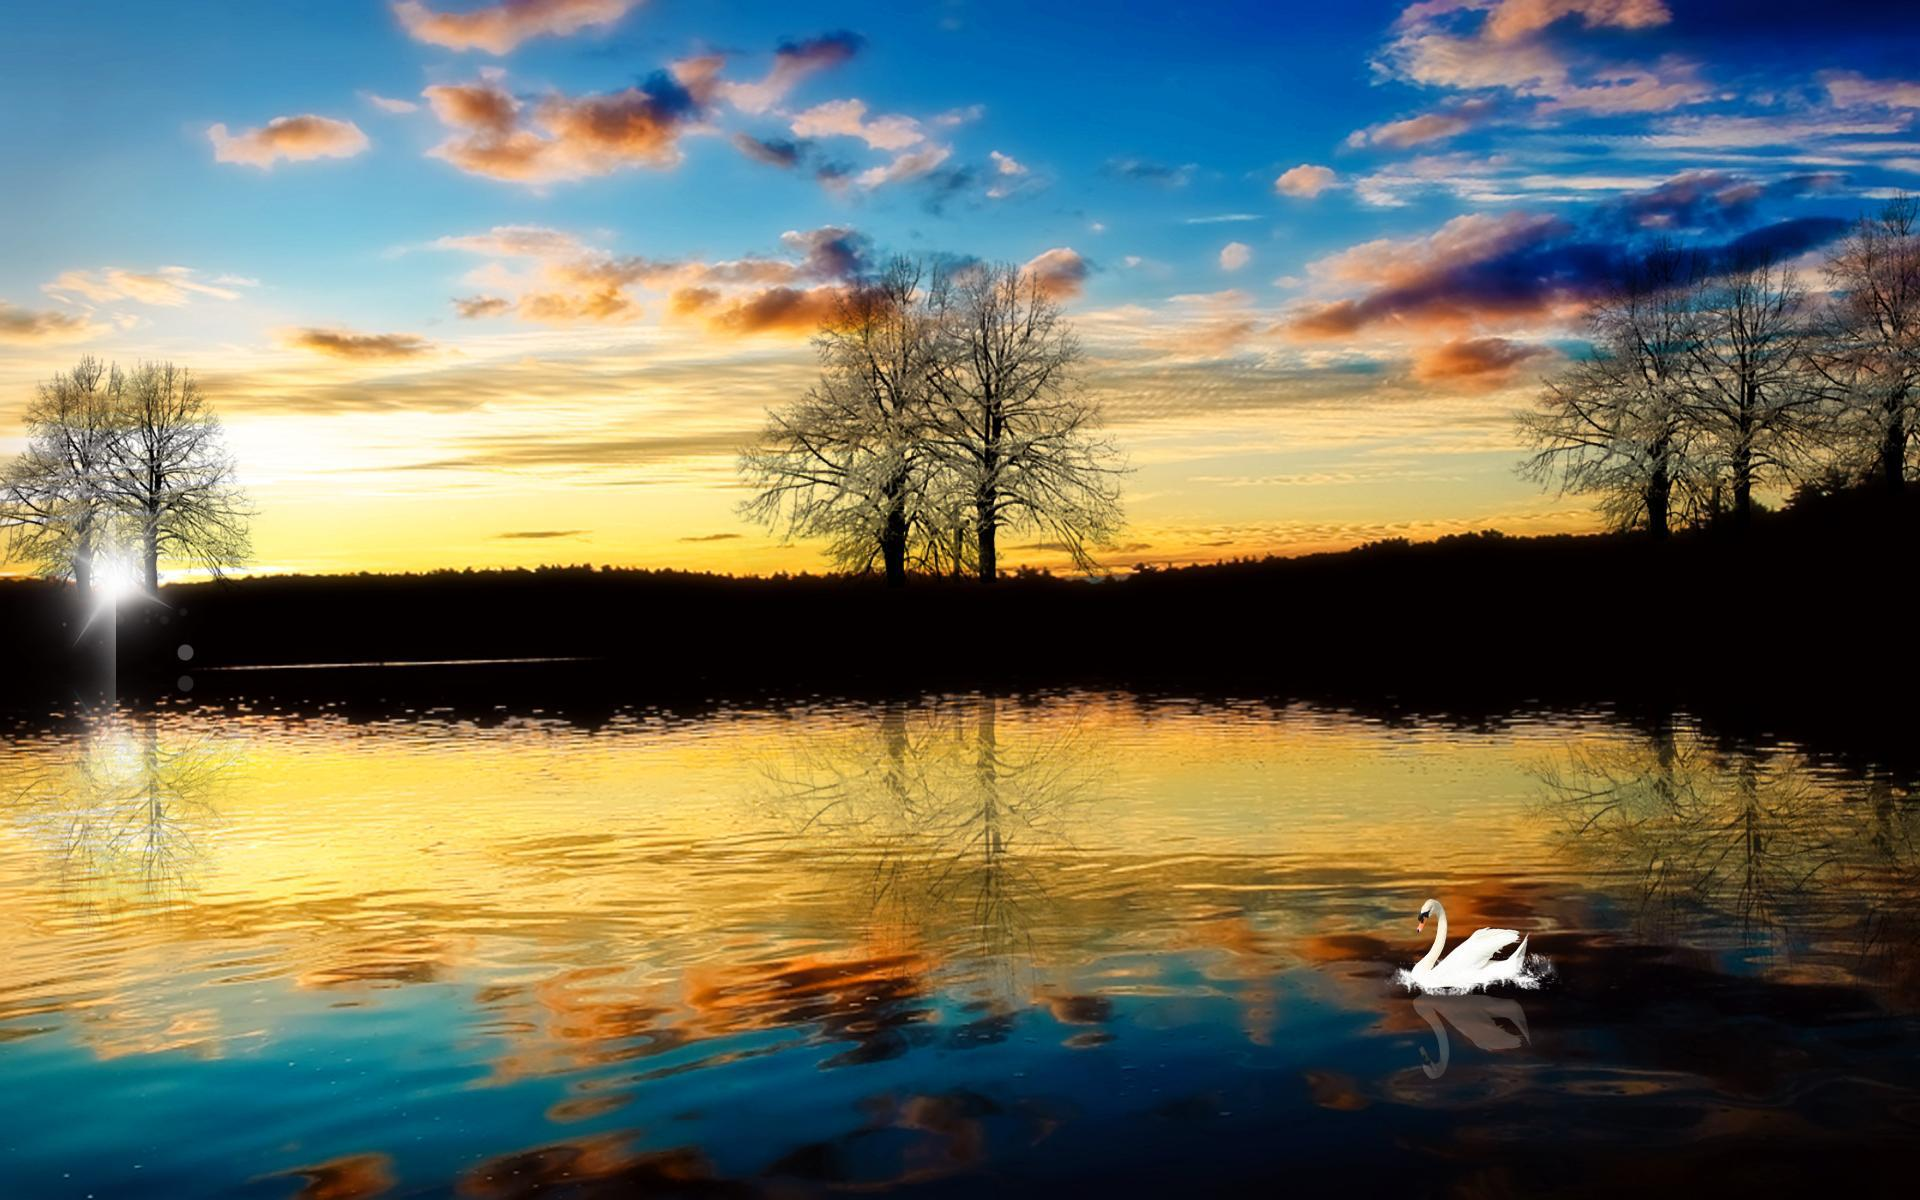 34866 download wallpaper Animals, Birds, Rivers, Swans screensavers and pictures for free